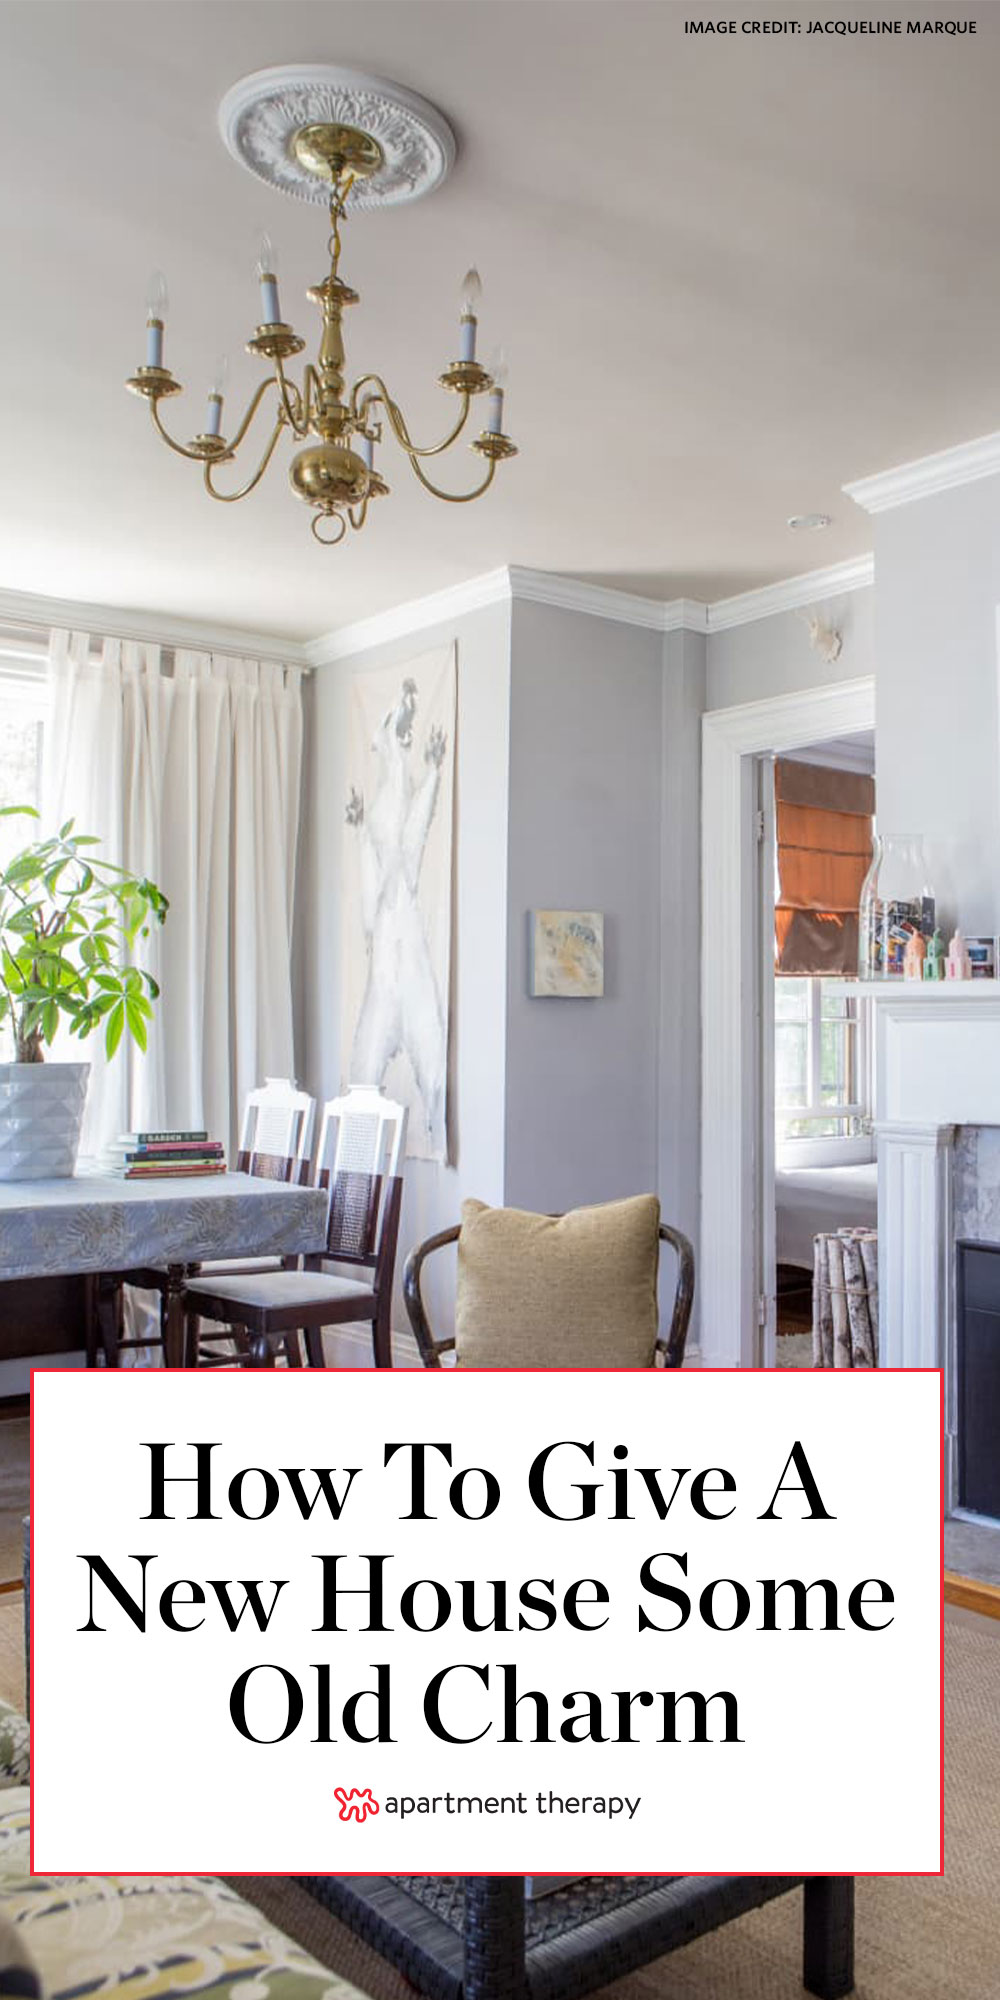 How To Design A New Home So It Looks Older Than It Is Apartment Therapy